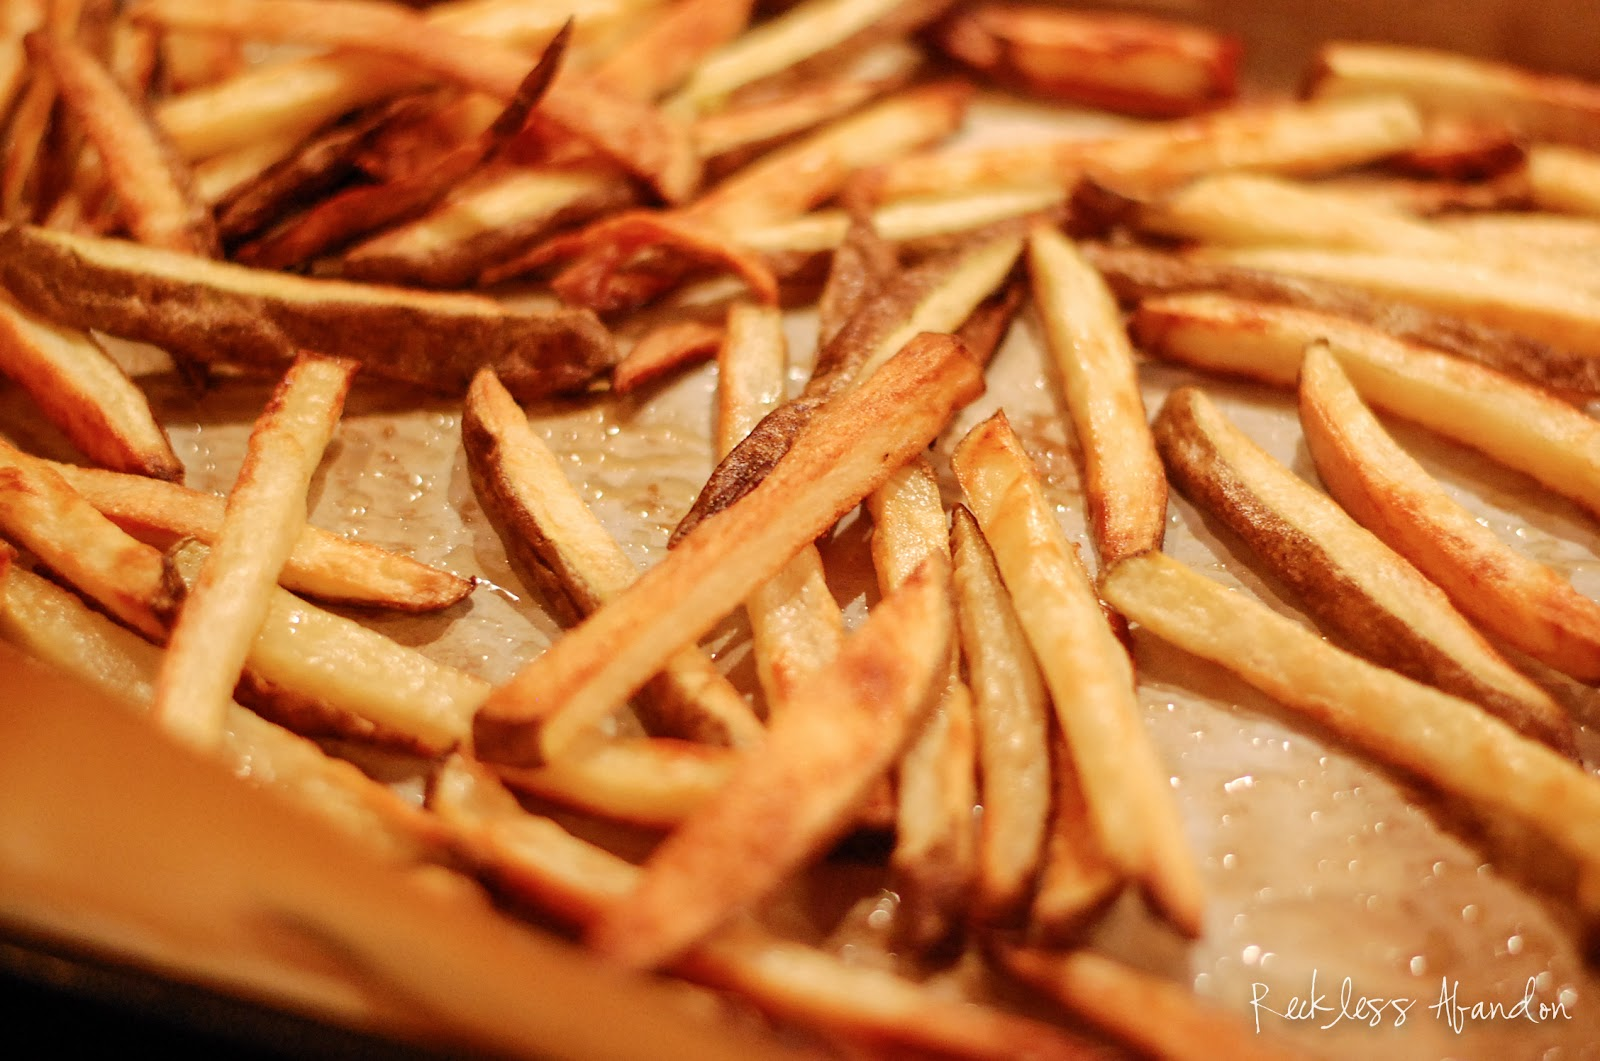 Reckless Abandon: Crispy Oven Baked French Fries